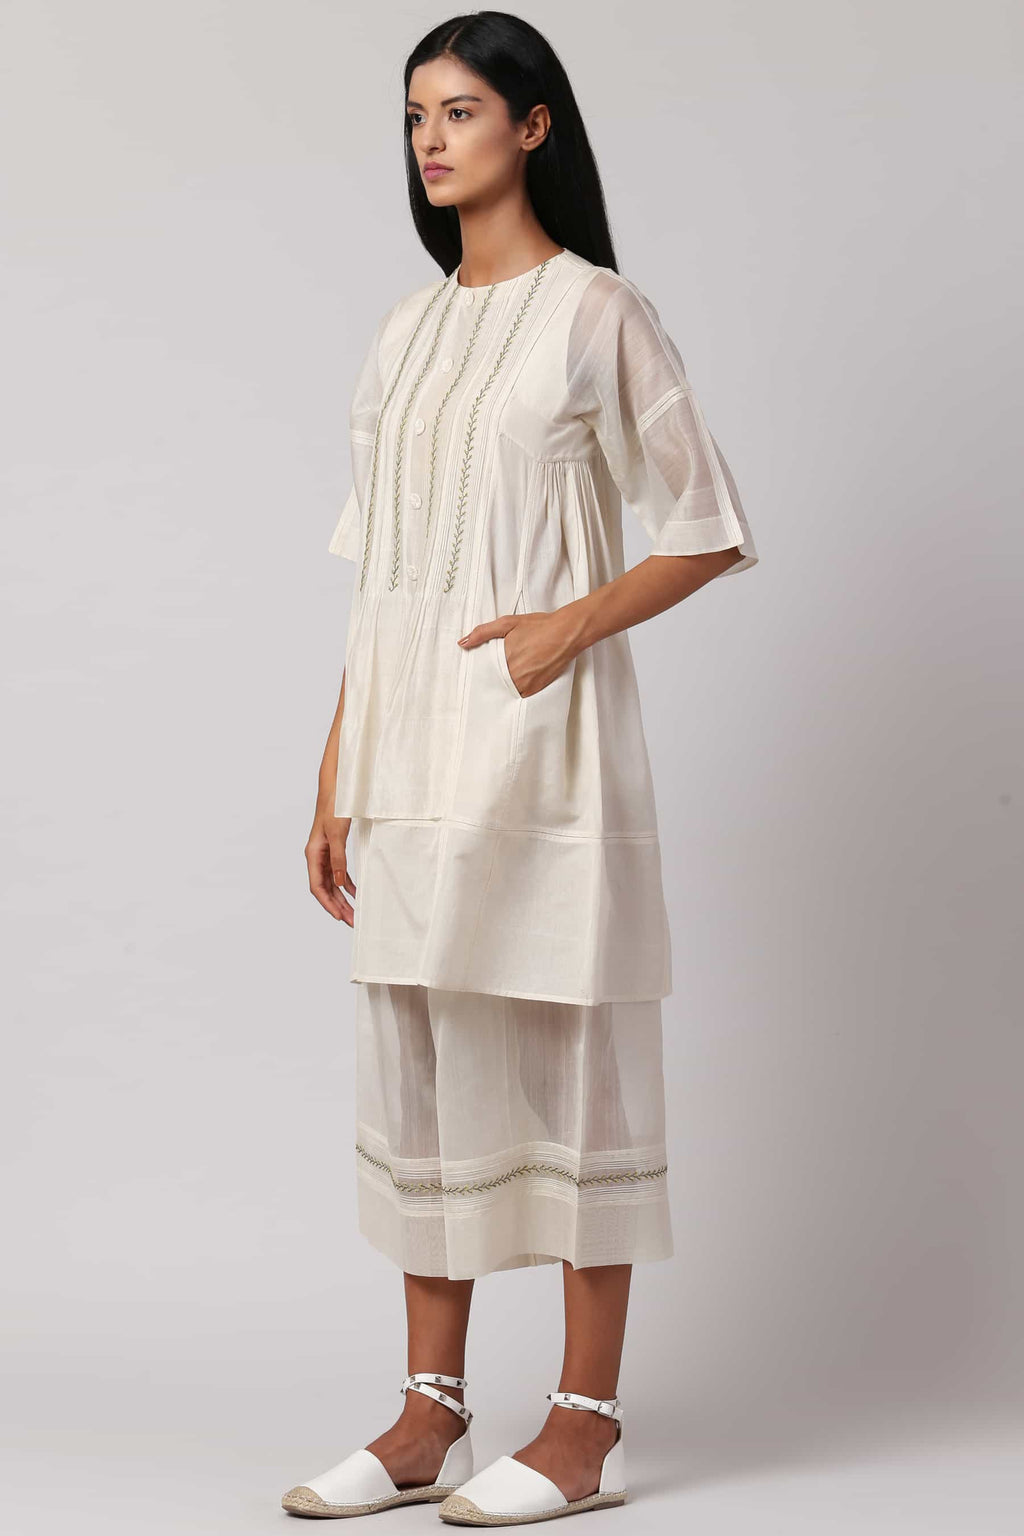 Ivory hand-embroidered dress made in 100% handwoven yarn dyed silk Chanderi - side